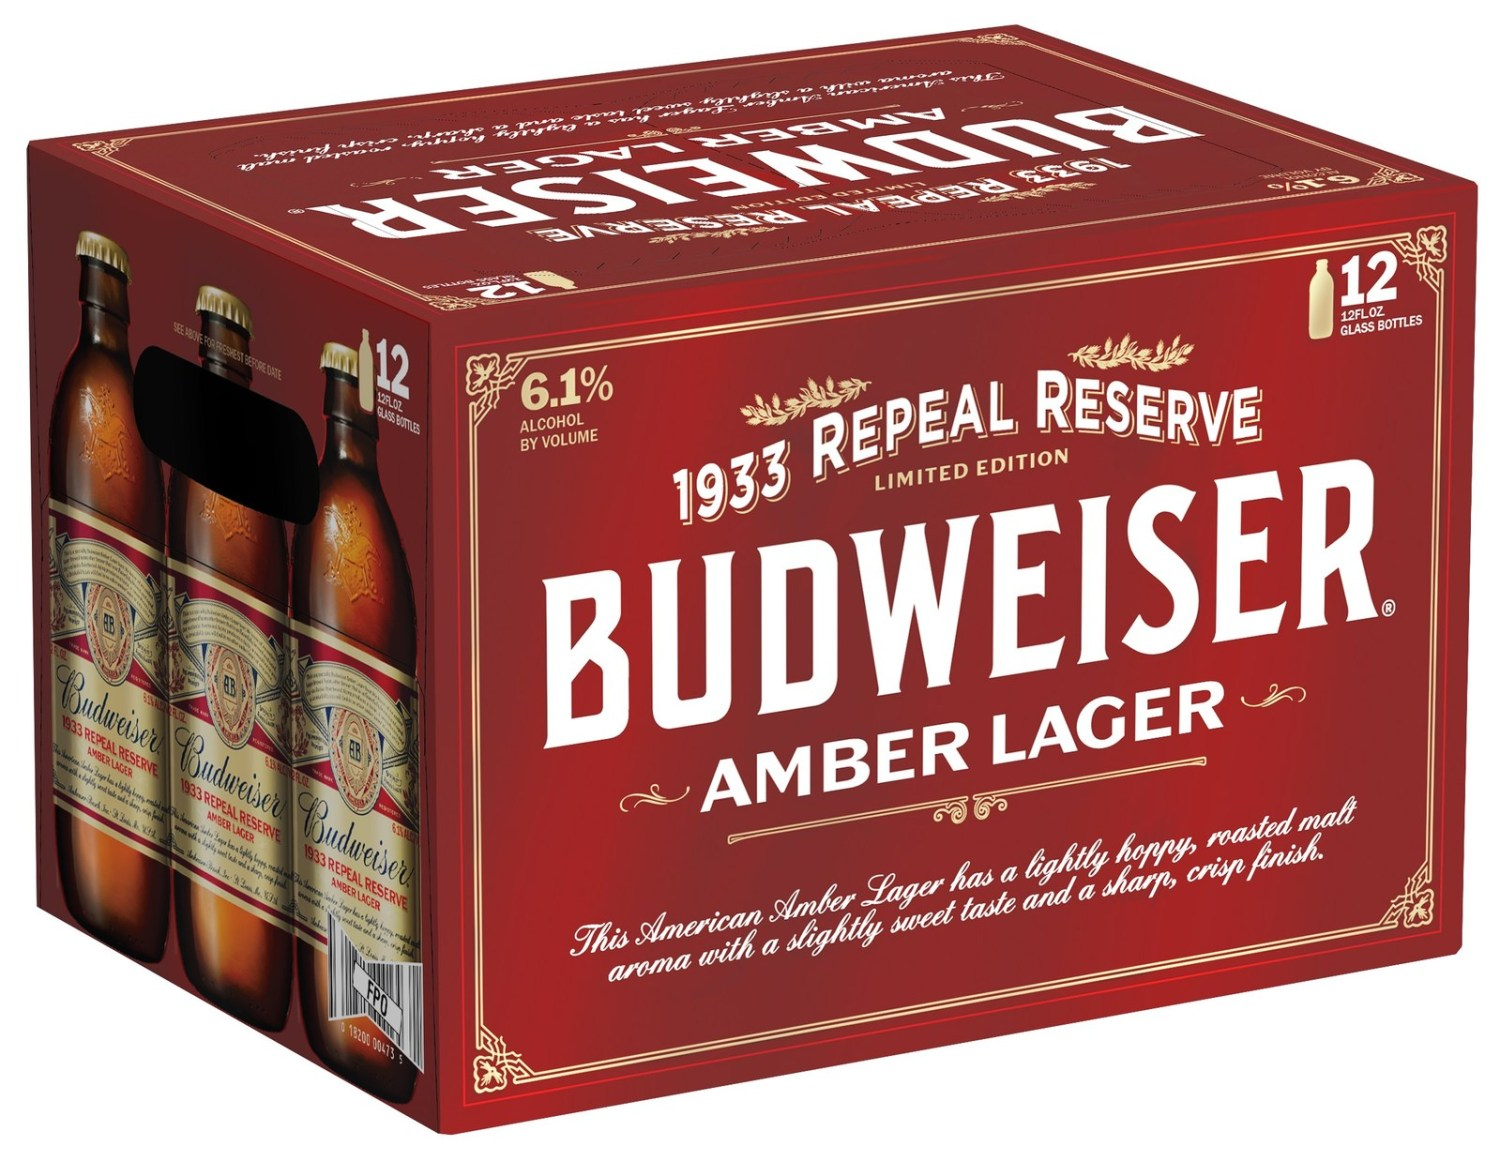 A New Limited Edition Amber Lager Is Released In Honor Of Prohibition's Repeal